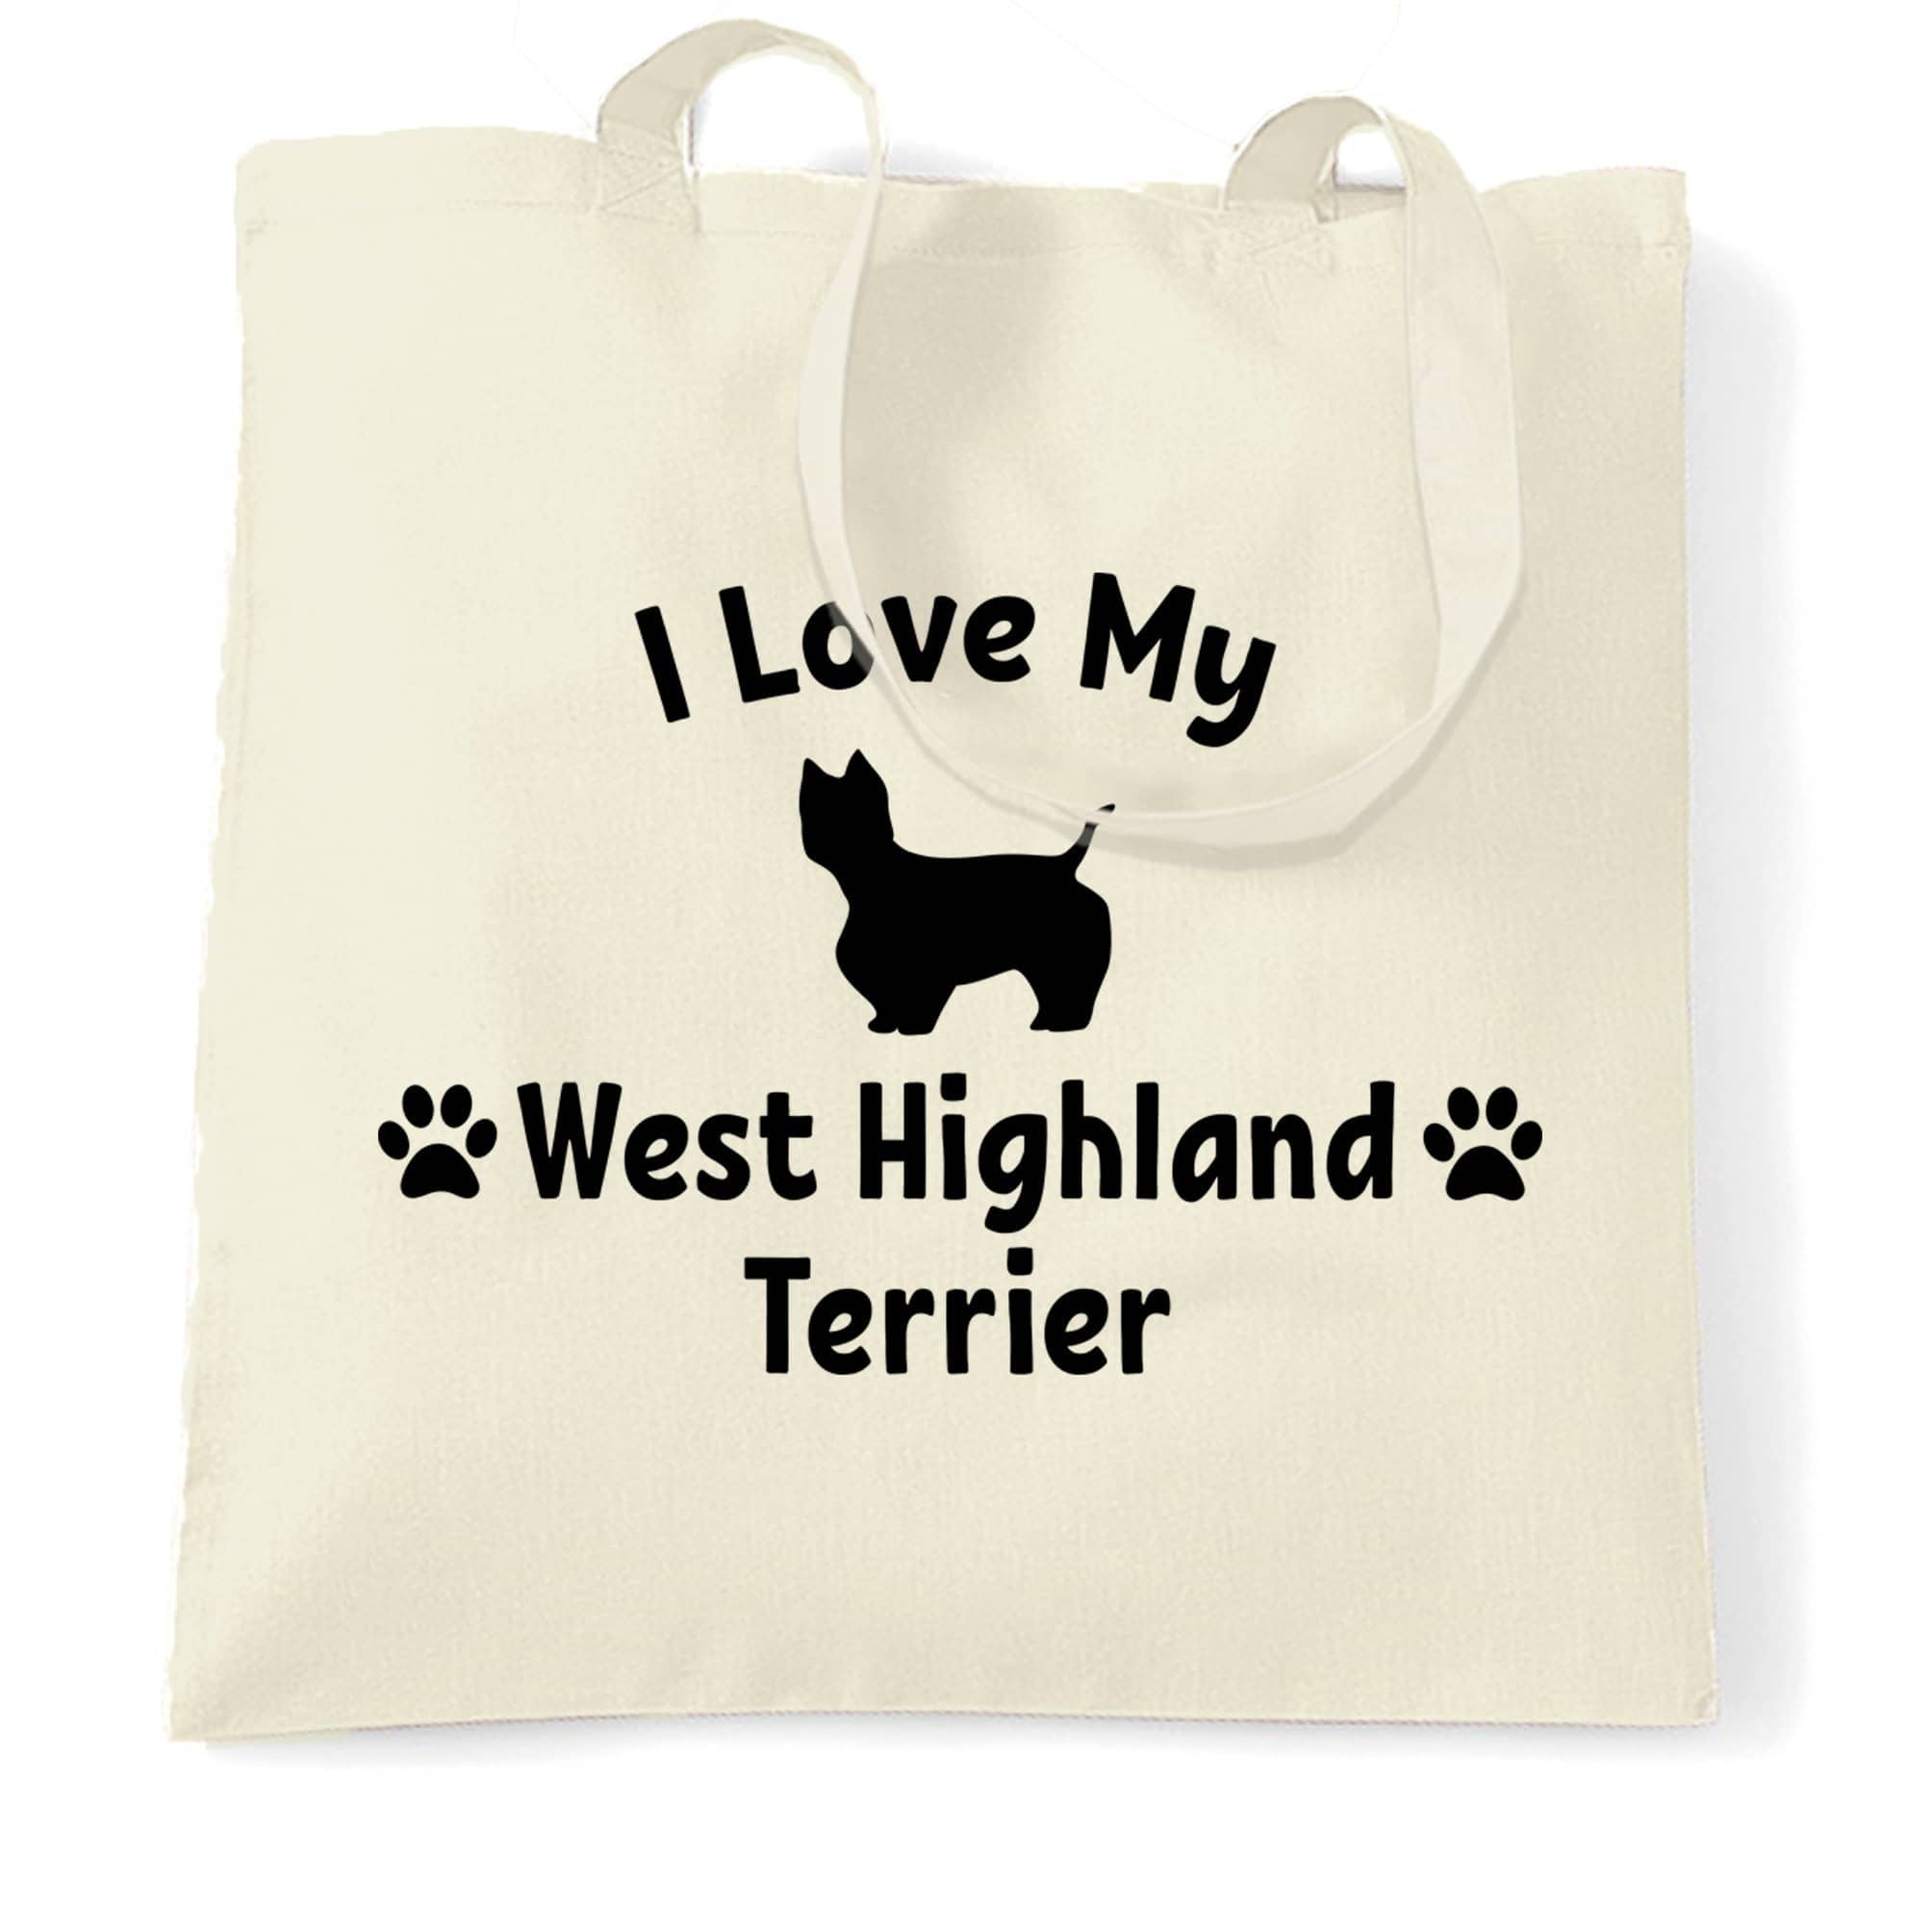 Dog Owner Tote Bag I Love My West Highland Terrier